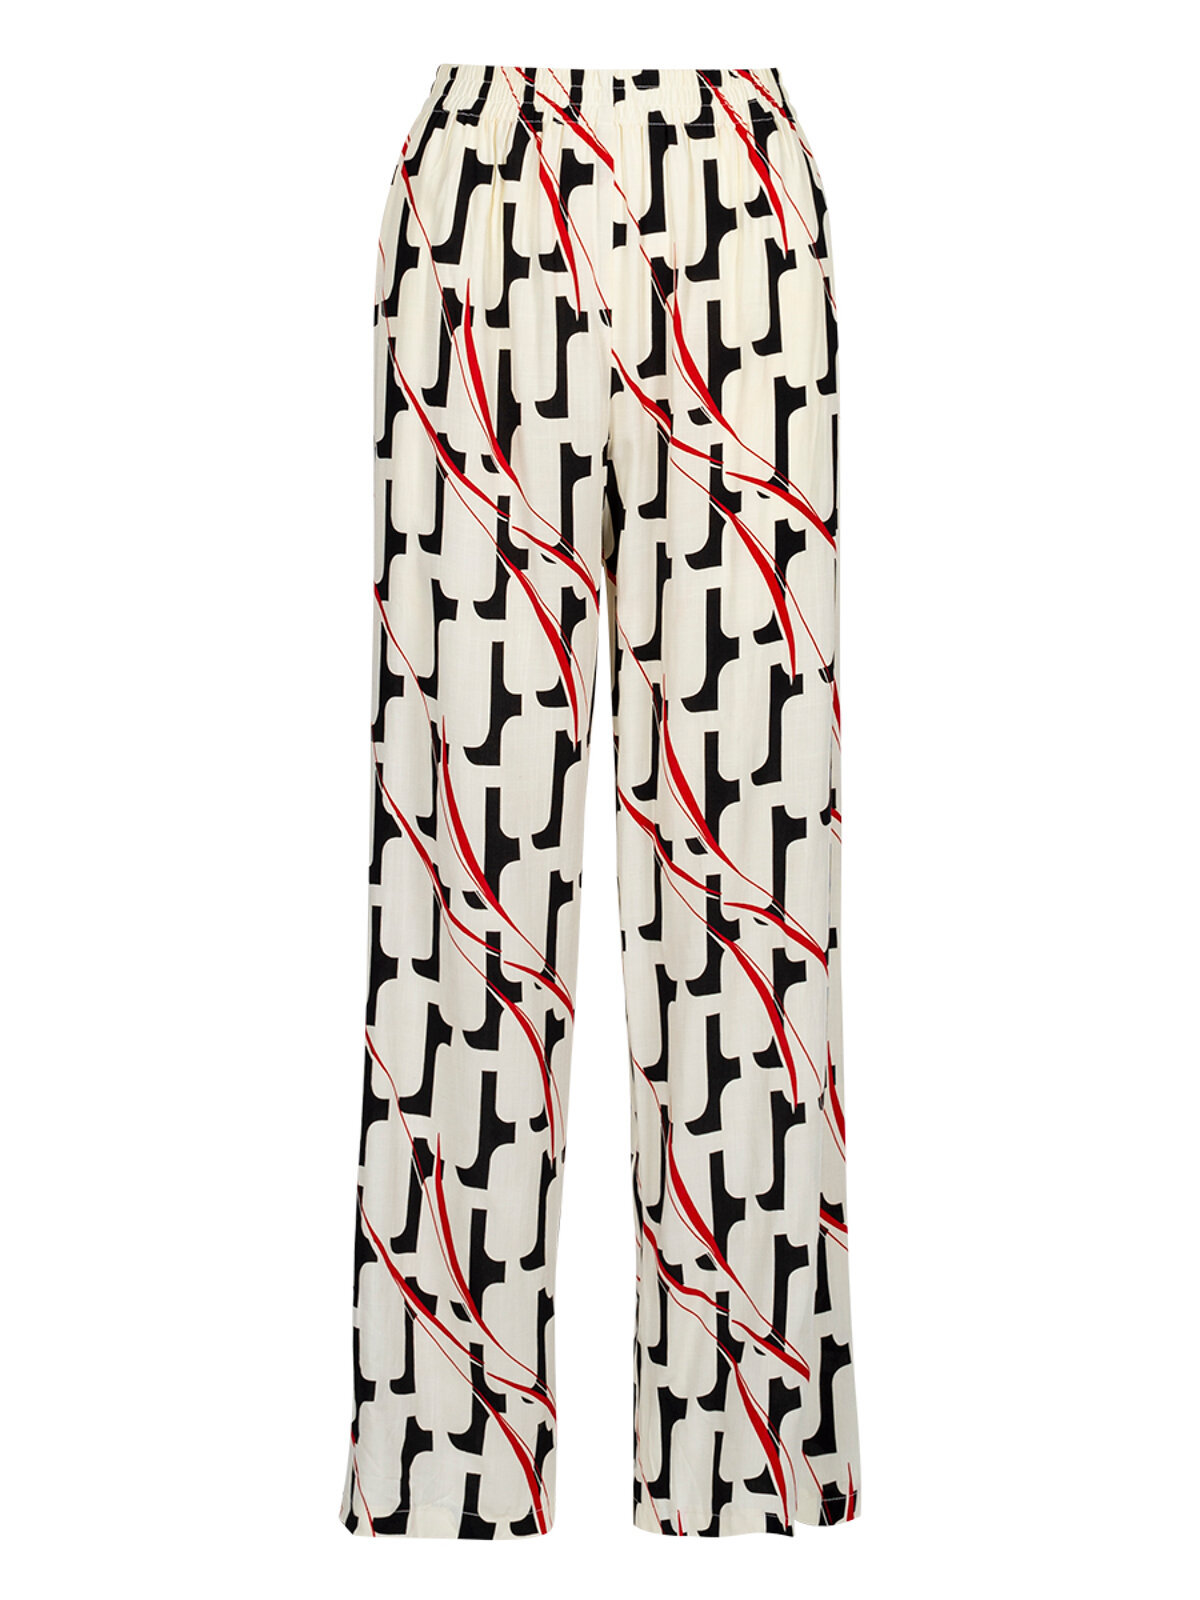 Pamina Origami Trouser - Anonyme Designers